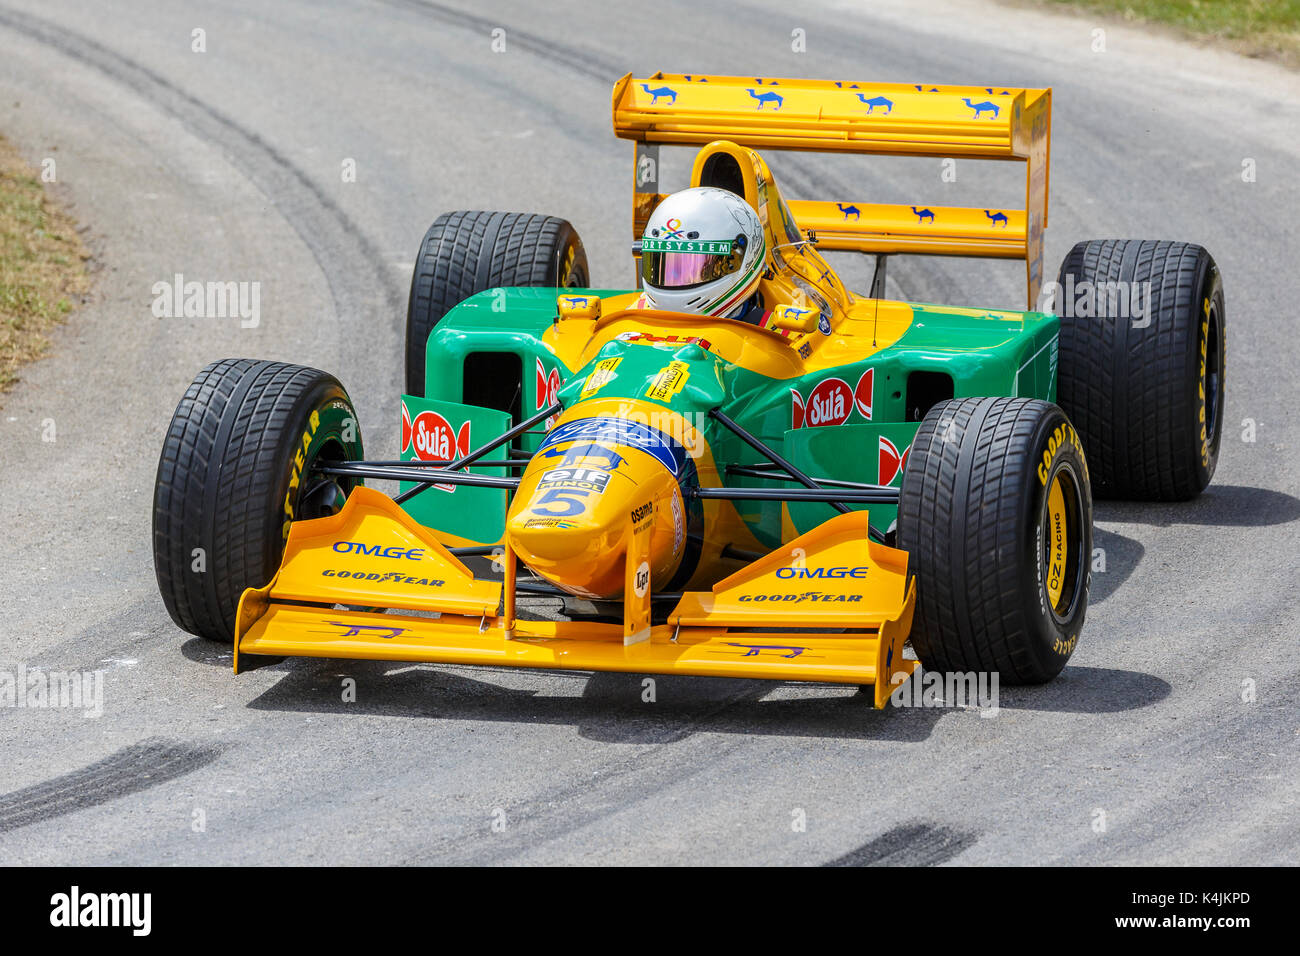 1993 Benetton-Ford B193 F1 car with driver Stephen Ottavianelli at the 2017 Goodwood Festival of Speed, Sussex, UK. - Stock Image